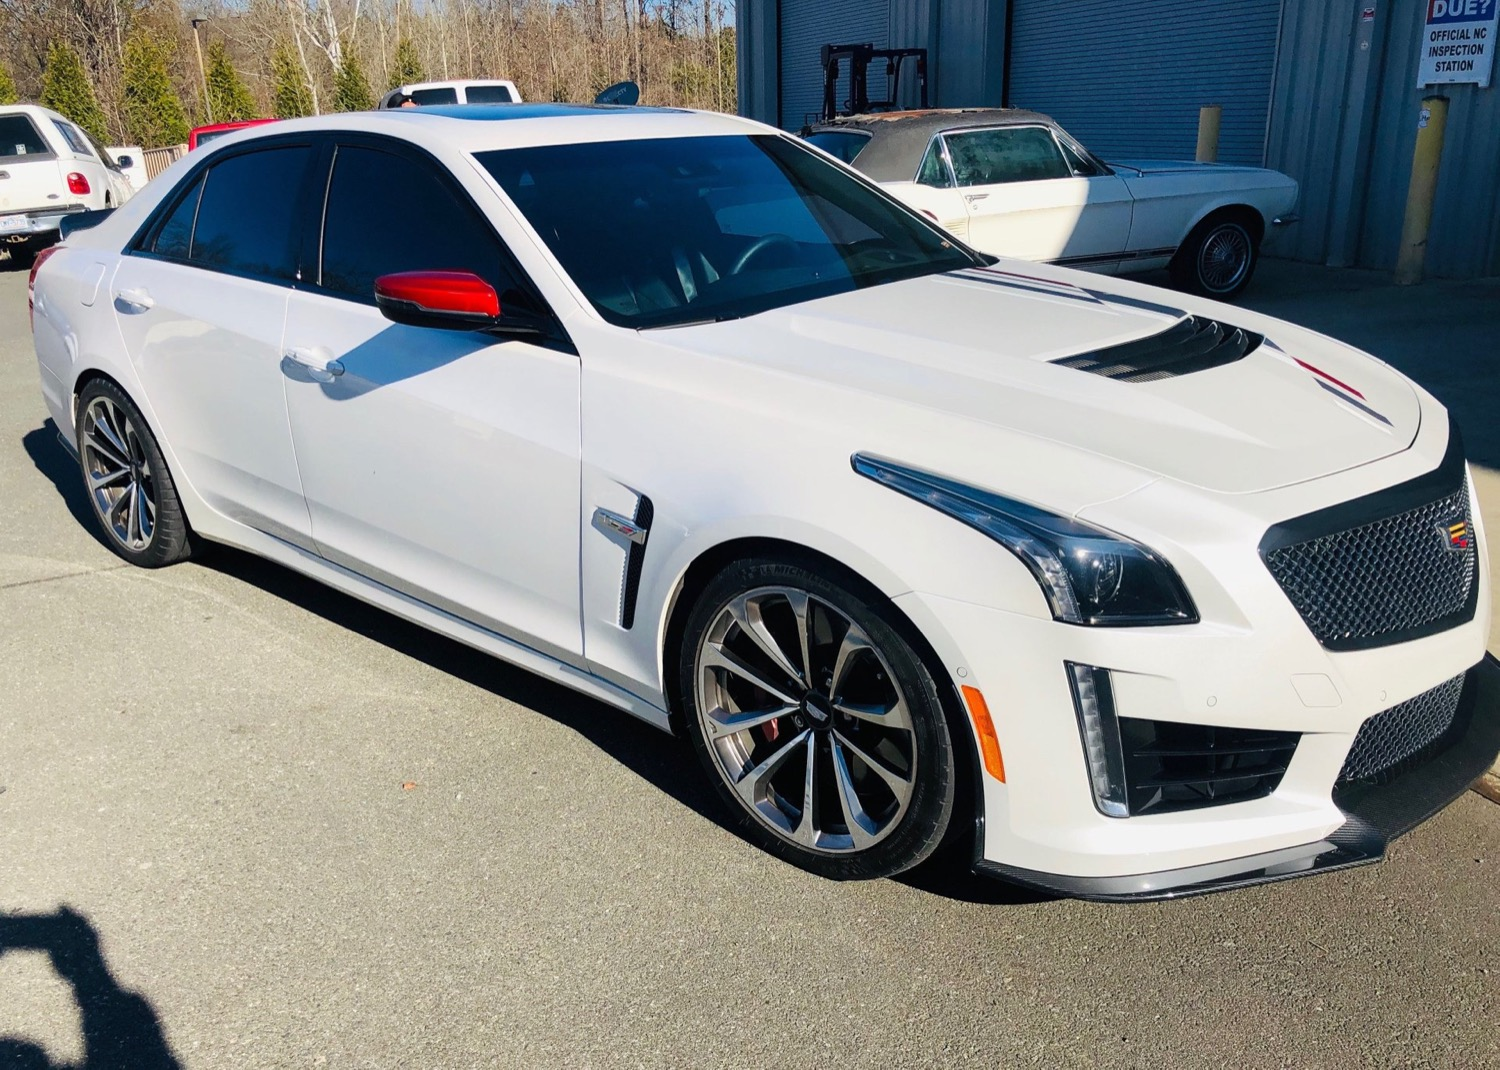 2018 Cadillac Cts V Championship Edition Headed To Auction